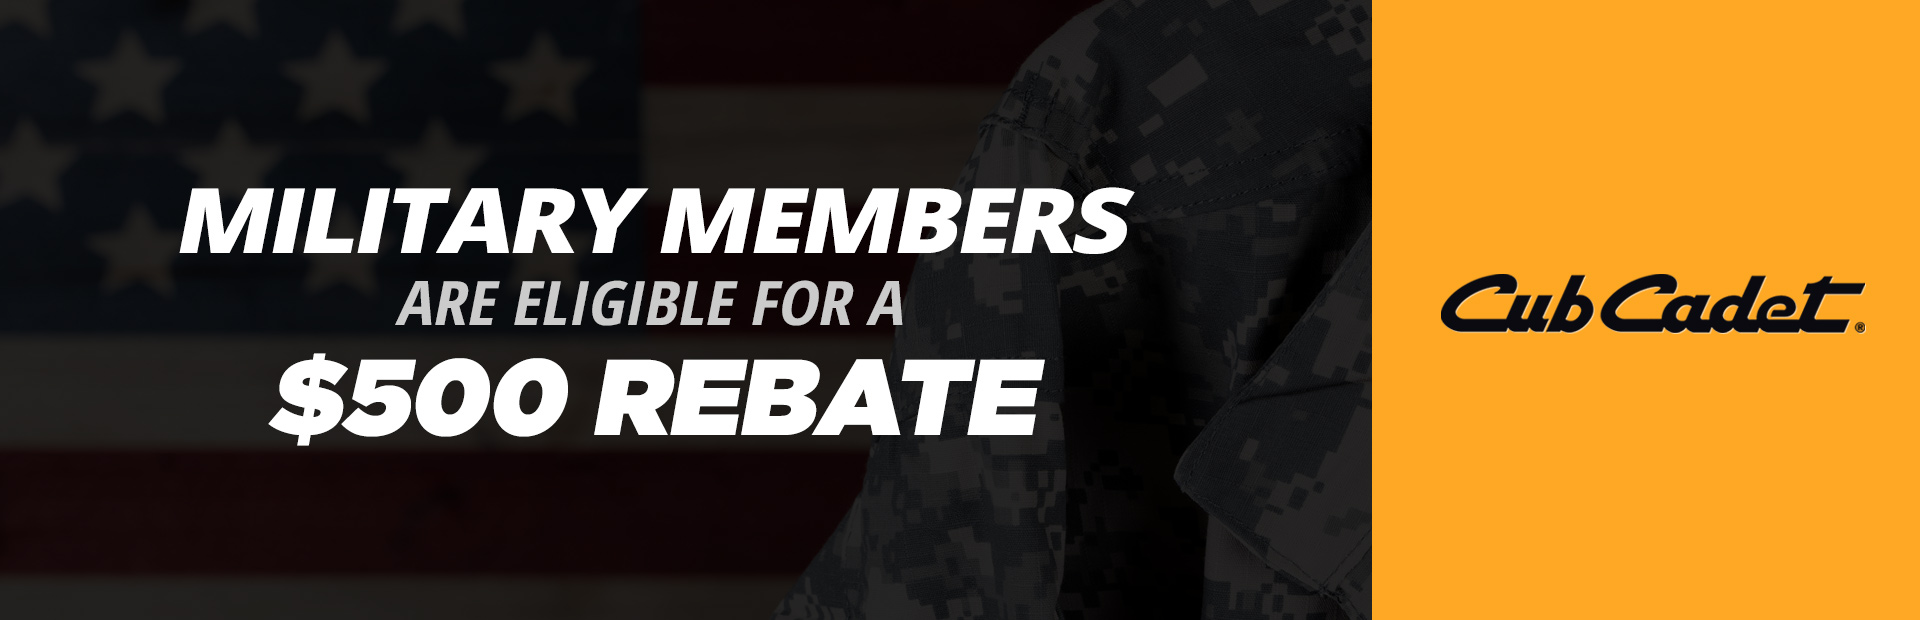 Cub Cadet: Military Members Are Eligible For A $500 Rebate